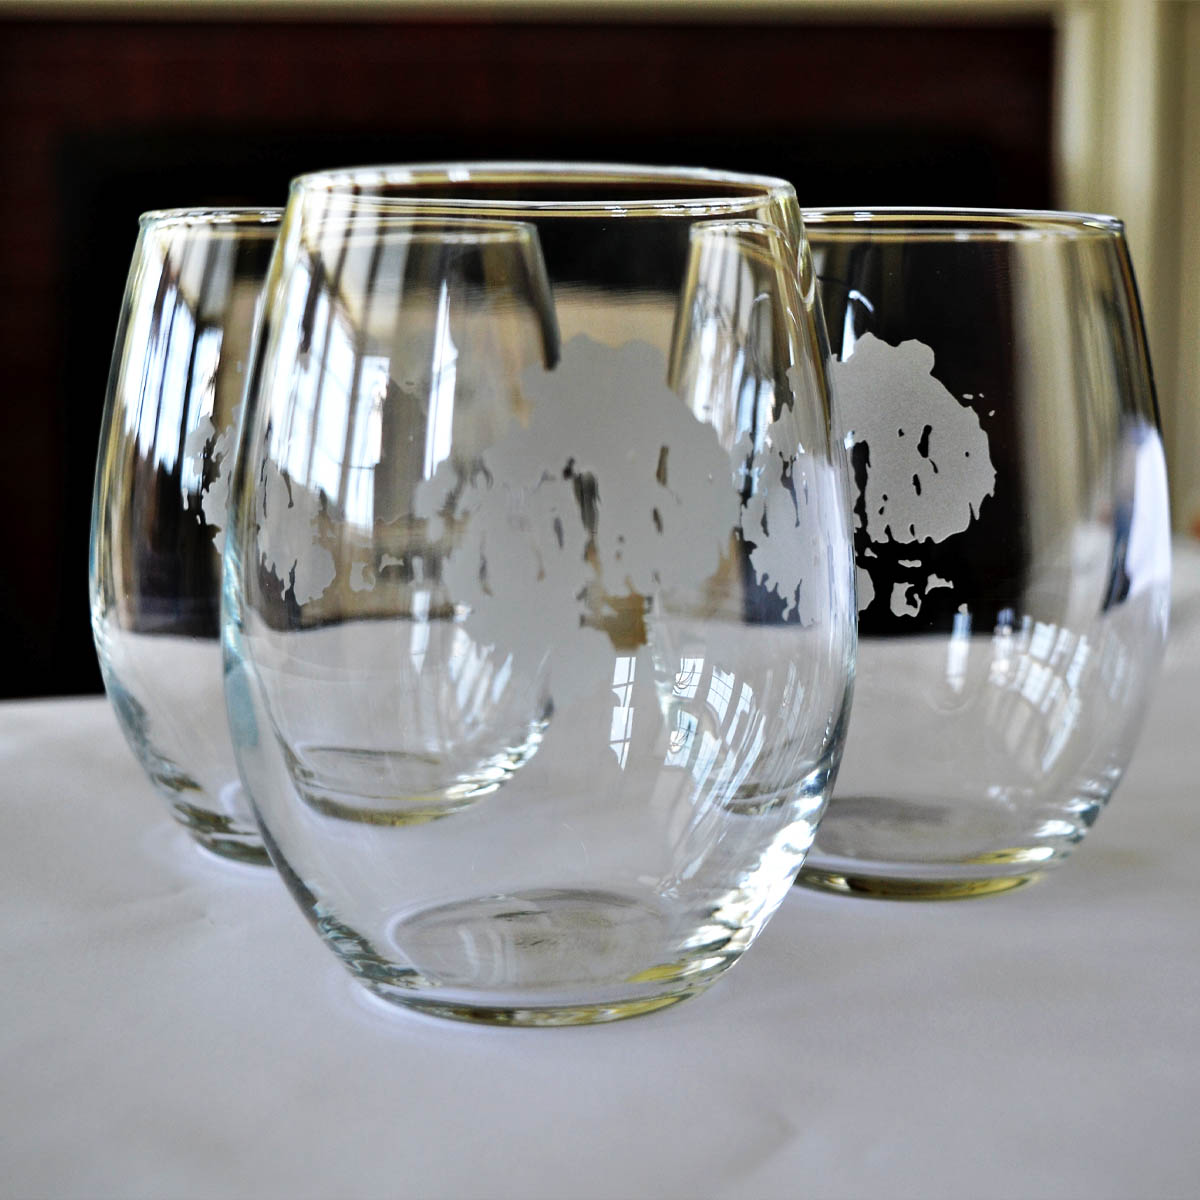 MDI Stemless Wine Glasses - This set of six stemless wine glasses was generously provided by an anonymous donor and purchased right in NEH at the Kimaball Shop. Featuring an etched silhouette of our island home, these glasses are perfect for entertaining.Retail Value: $93.00